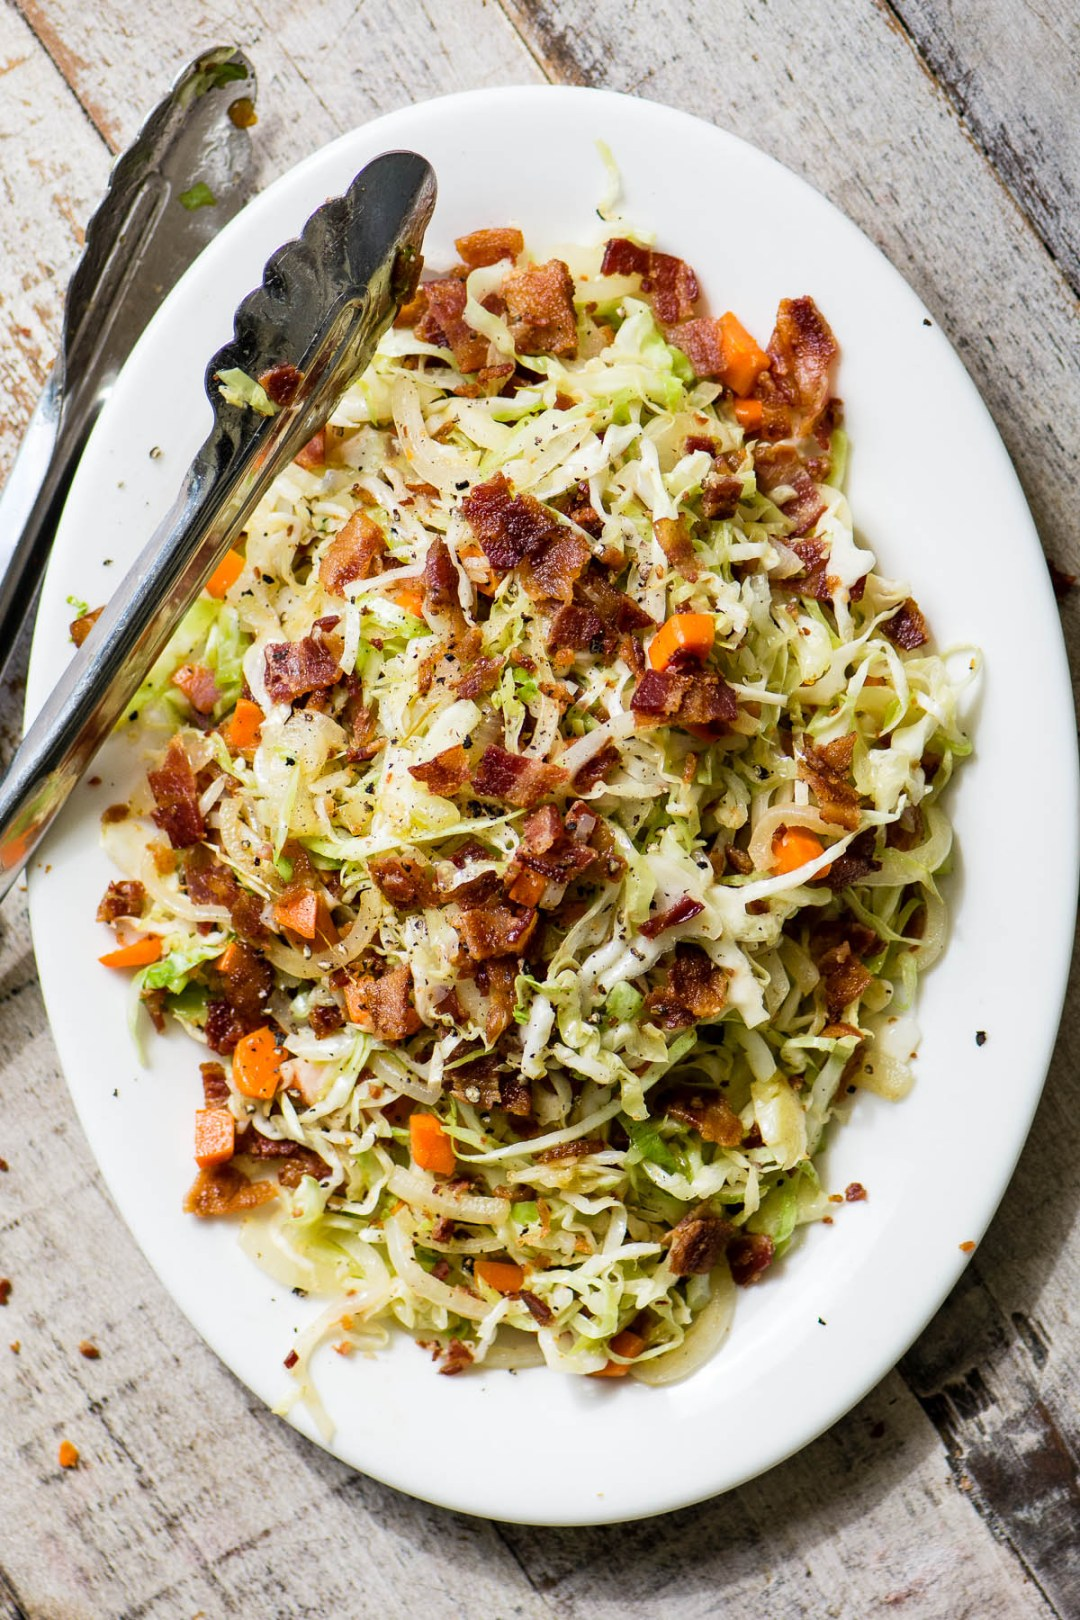 a white platter of fried cabbage and bacon slaw, with metal tongs